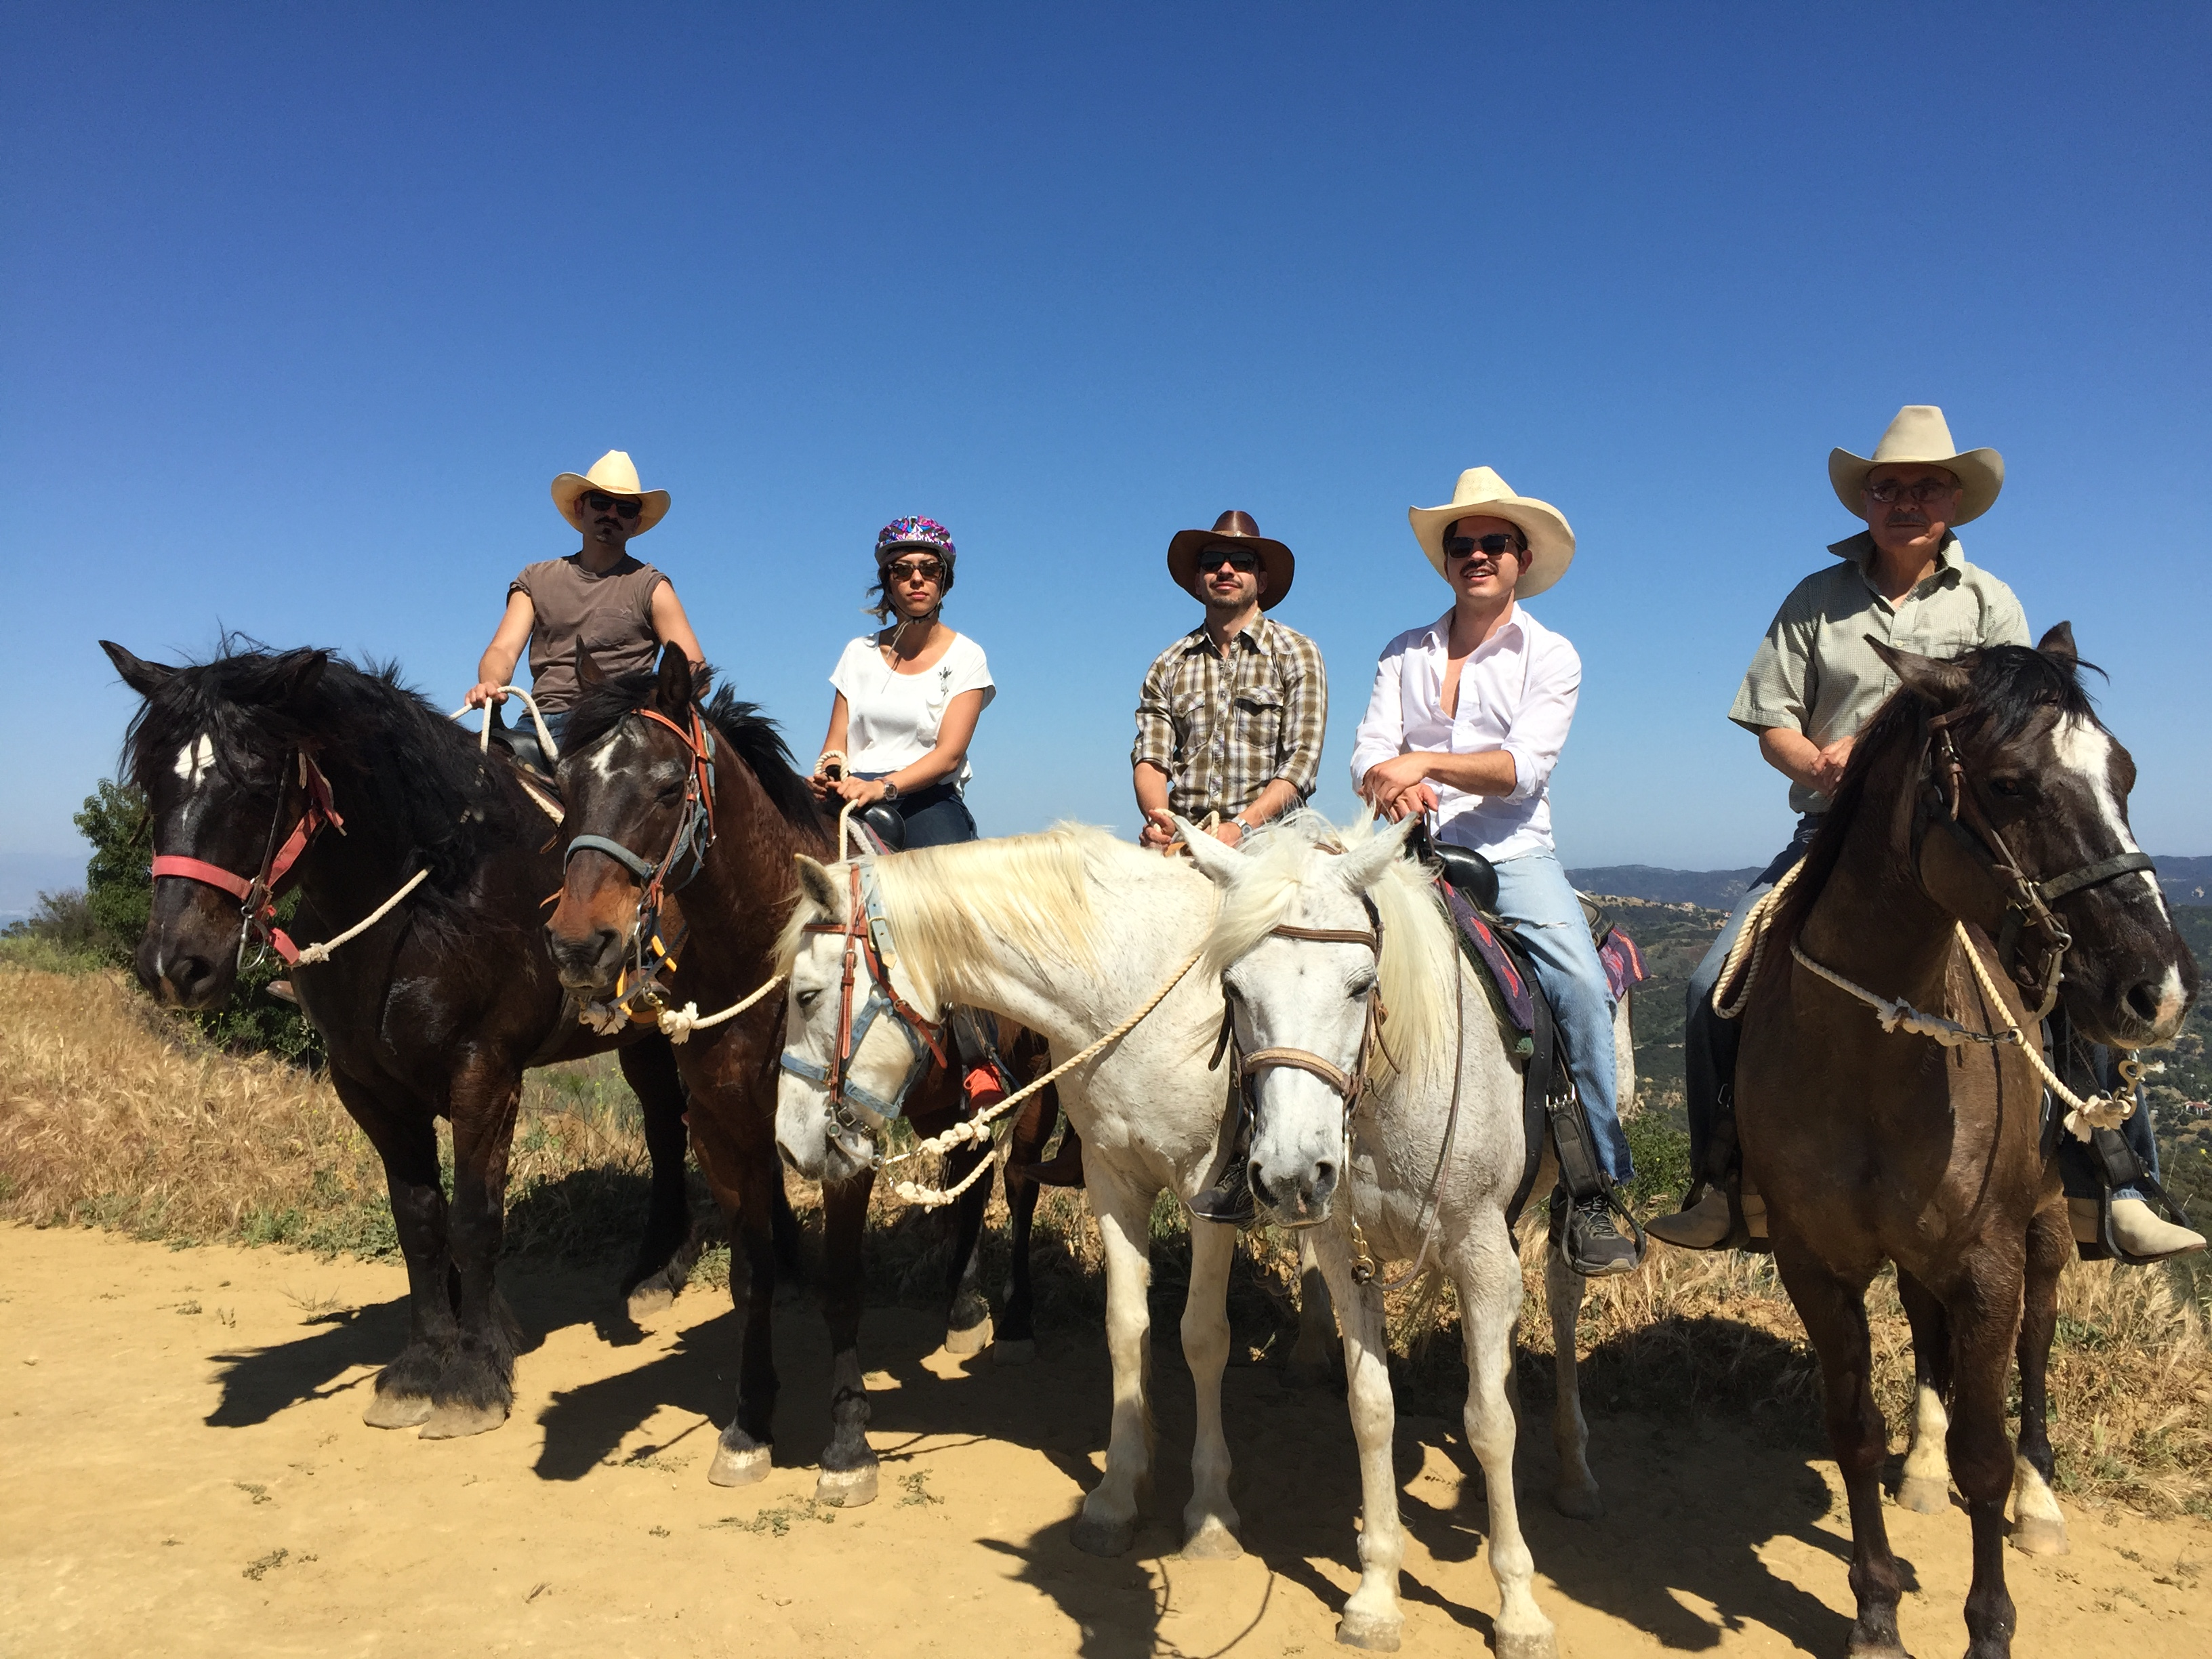 Trail riders at Los Angeles Horseback Riding